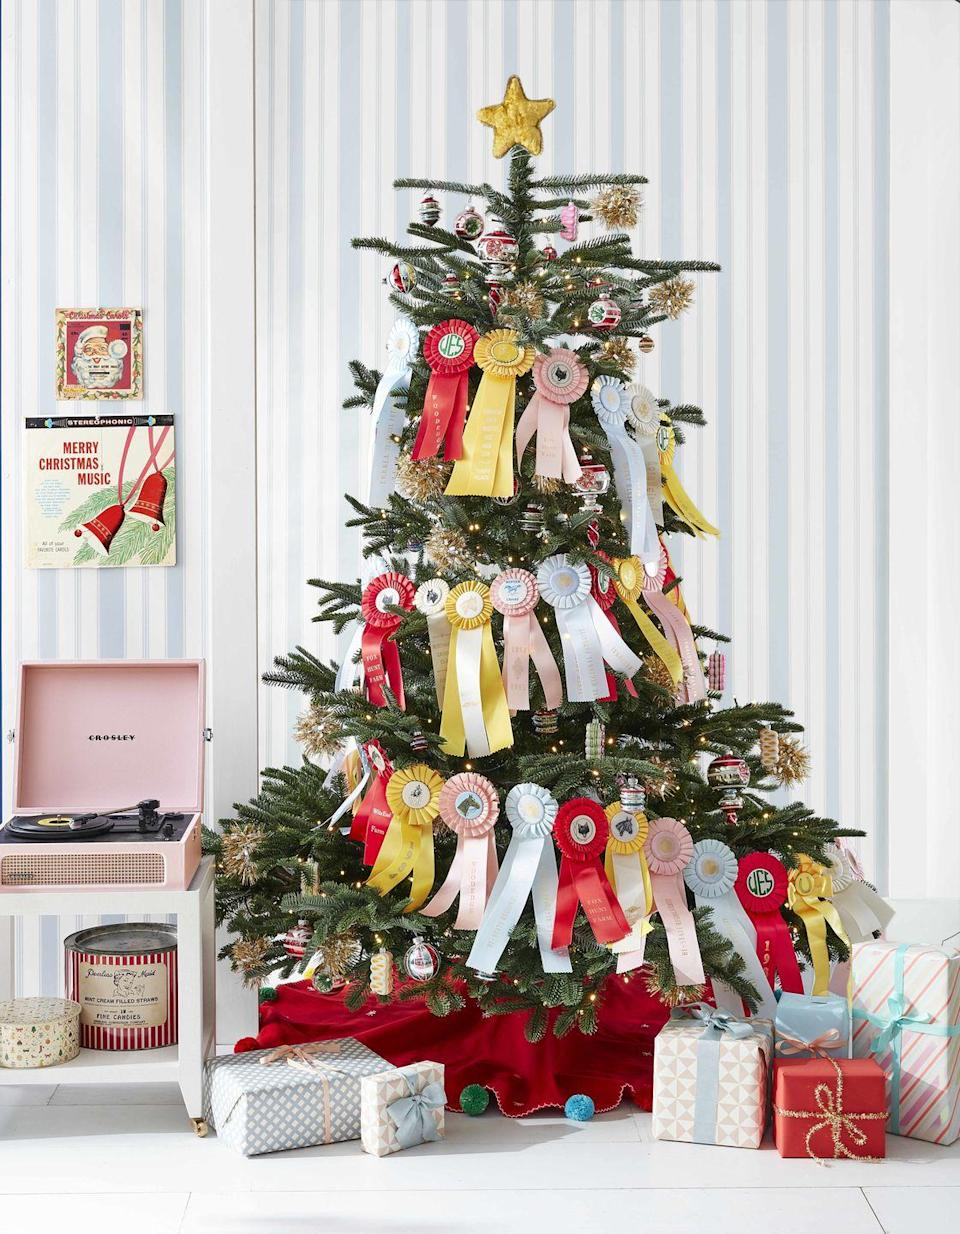 """<p>You can create a charming, first-rate garland by stringing together prize ribbons or other colorful collections (try pennants, scouting badges, or vintage travel tags) with floral wire. Choose a wide tree so that the garland will have space to stretch across, and coordinate your ribbon selection to match your existing Christmas decor.</p><p><a class=""""link rapid-noclick-resp"""" href=""""https://www.amazon.com/s?k=prize+ribbons&ref=nb_sb_noss_1&tag=syn-yahoo-20&ascsubtag=%5Bartid%7C10050.g.28703522%5Bsrc%7Cyahoo-us"""" rel=""""nofollow noopener"""" target=""""_blank"""" data-ylk=""""slk:SHOP PRIZE RIBBONS"""">SHOP PRIZE RIBBONS</a></p>"""